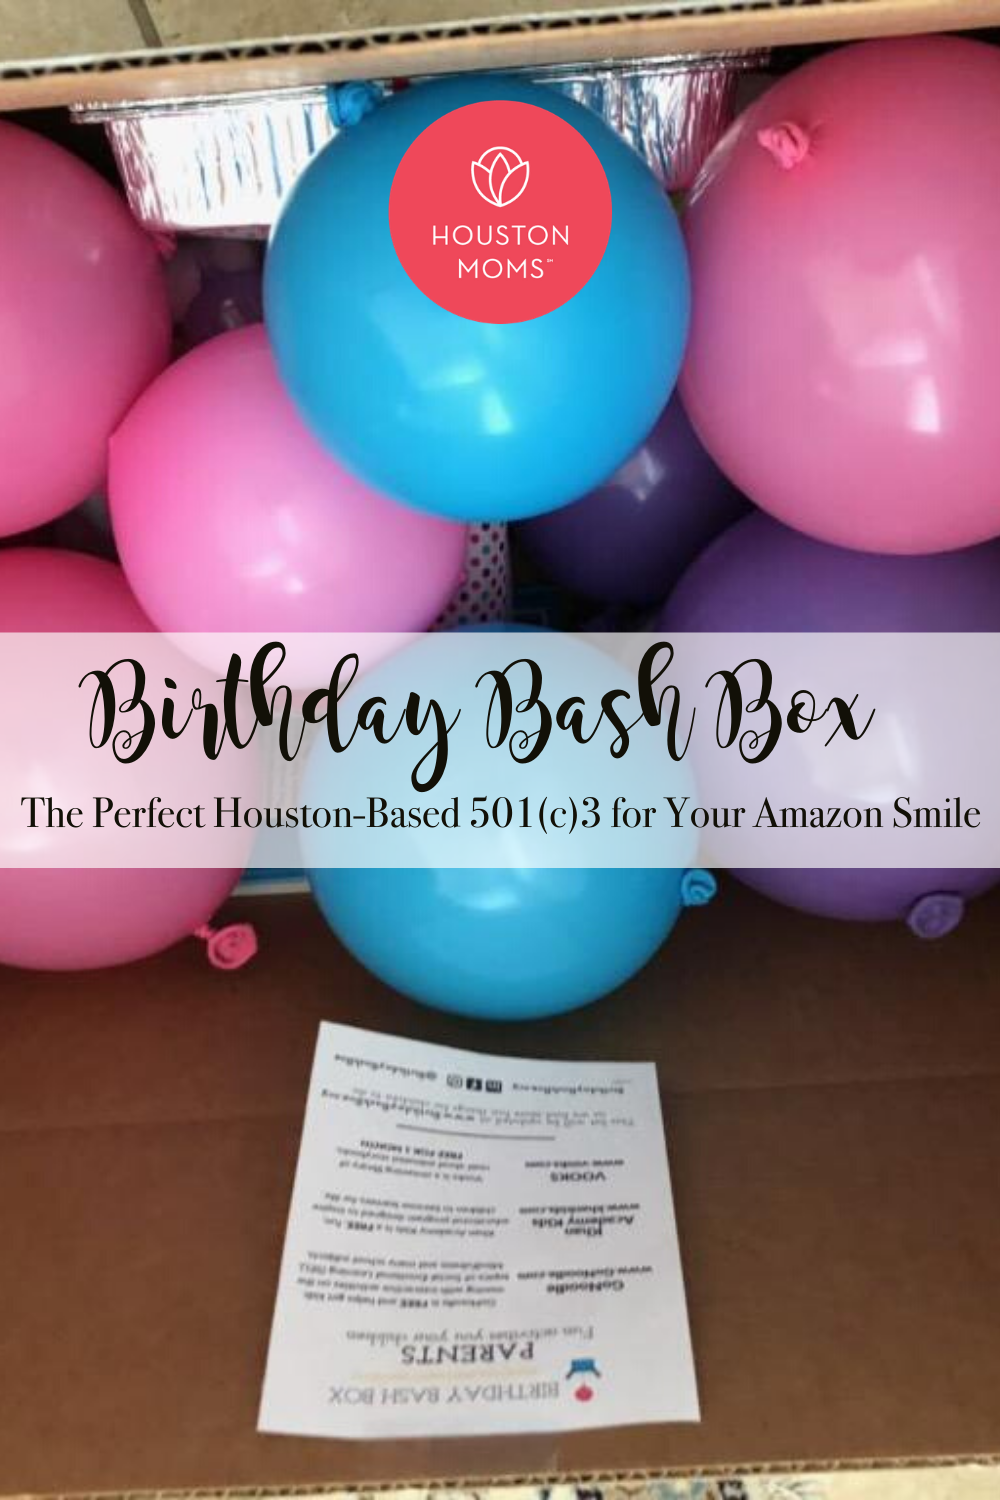 "Houston Moms ""Birthday Bash Box:: The Perfect Houston-Based 501(c)3 for Your Amazon Smile"" #houstonmoms #houstonmomsblog #momsaroundhouston"